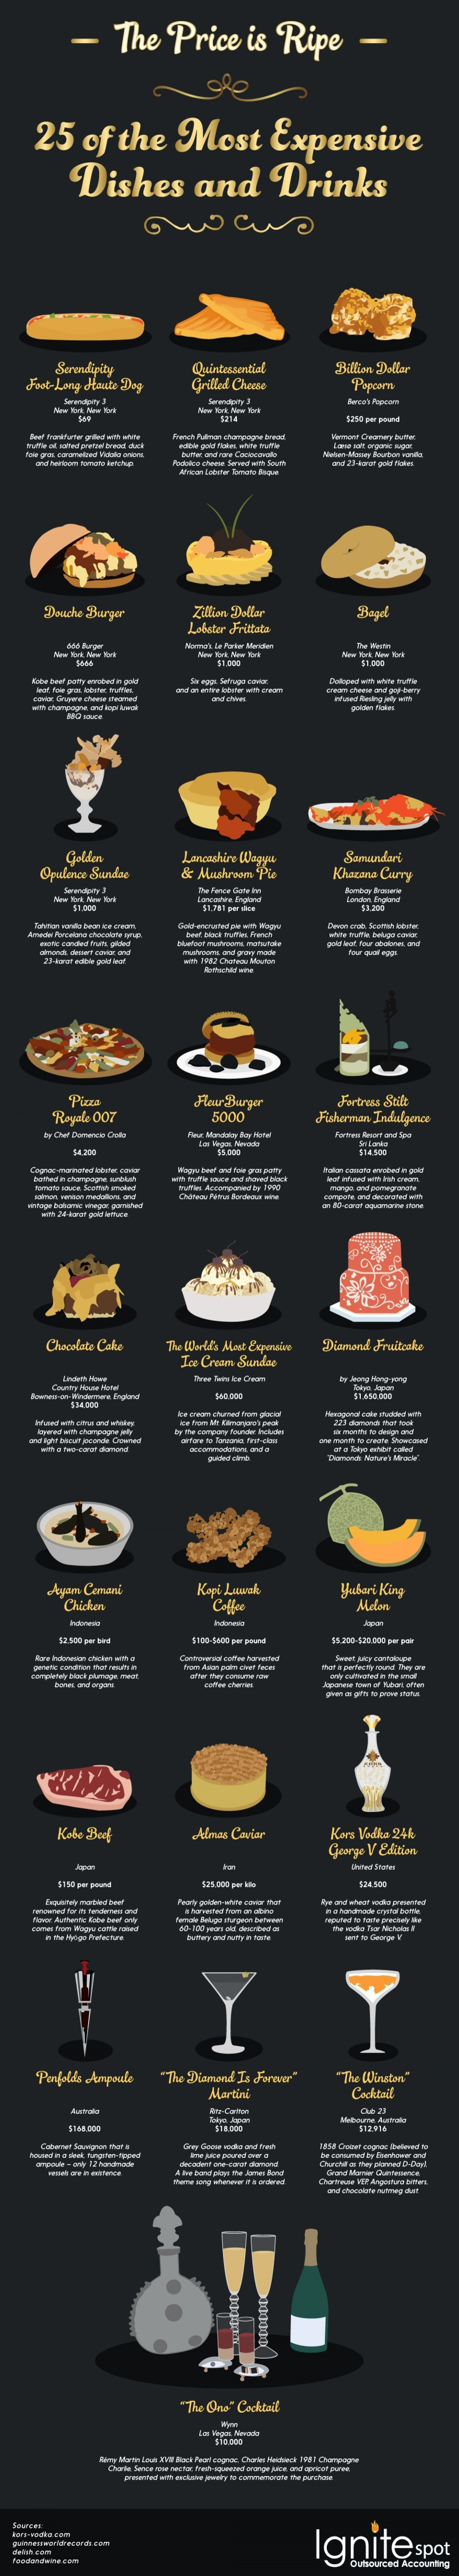 the-price-is-ripe-25-of-the-most-expensive-dishes-and-drinks_56c23c43447ef_w1500